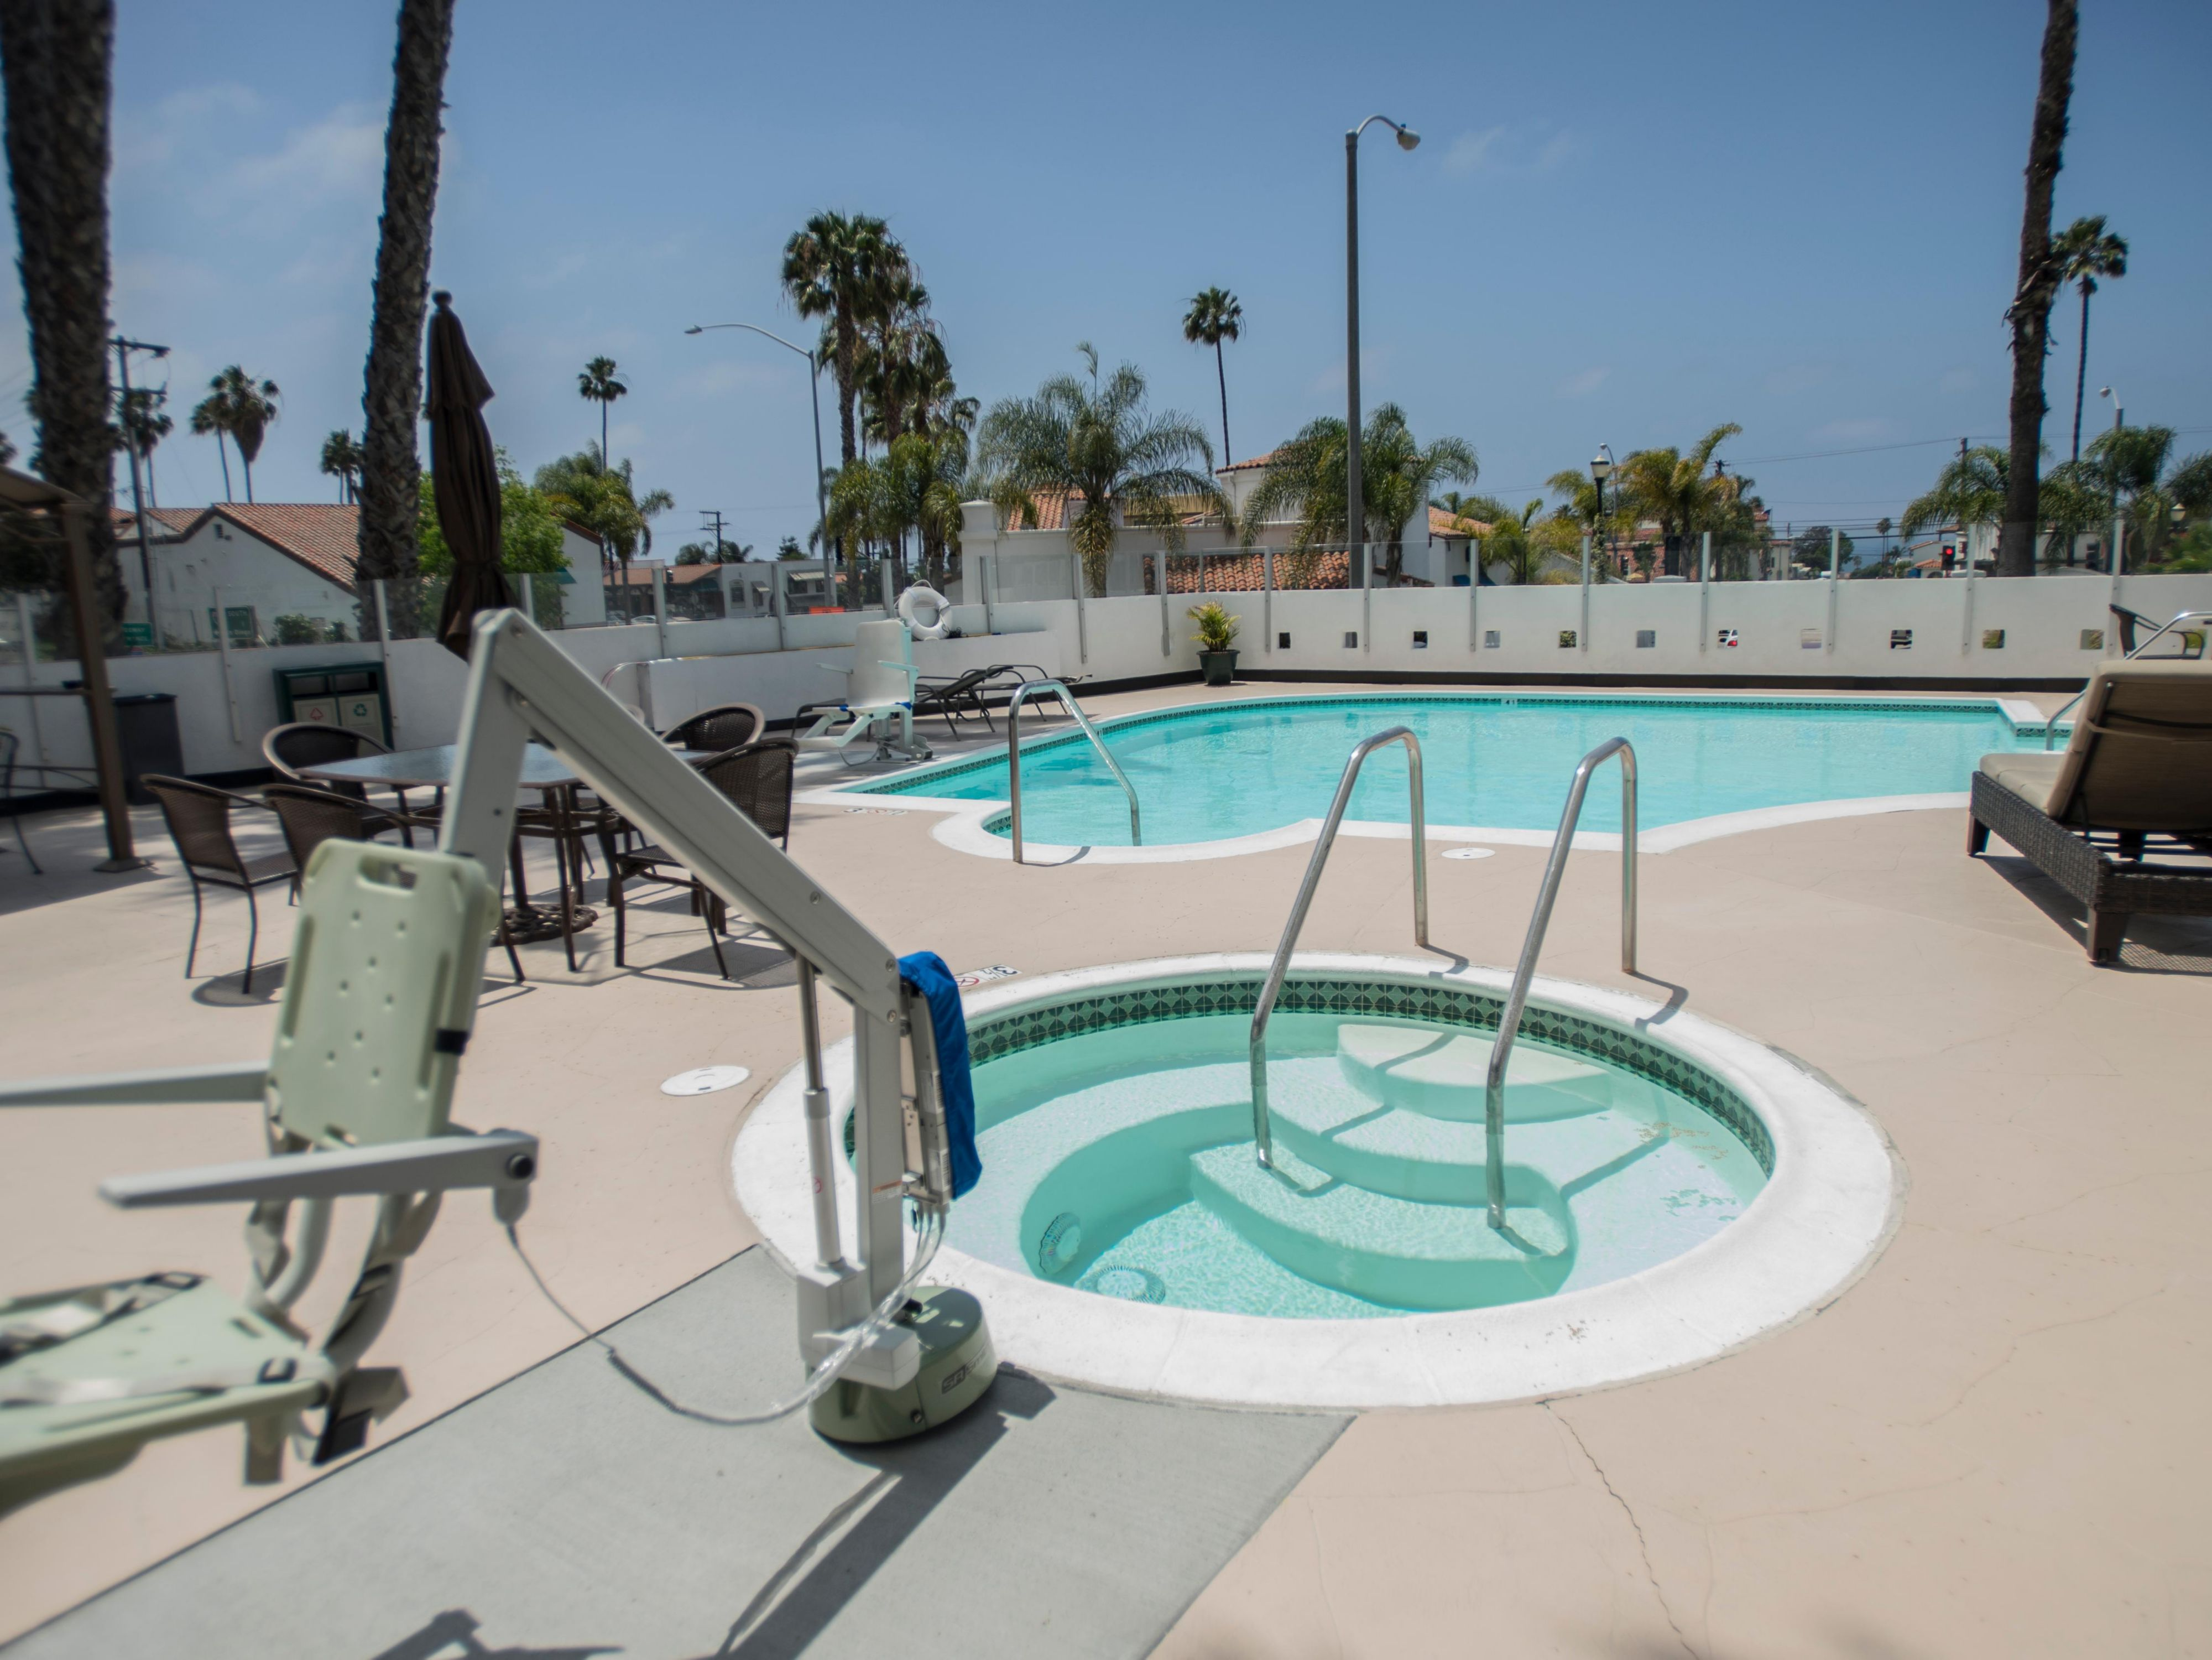 Relax in the Whirlpool at the Holiday Inn San Clemente Hotel